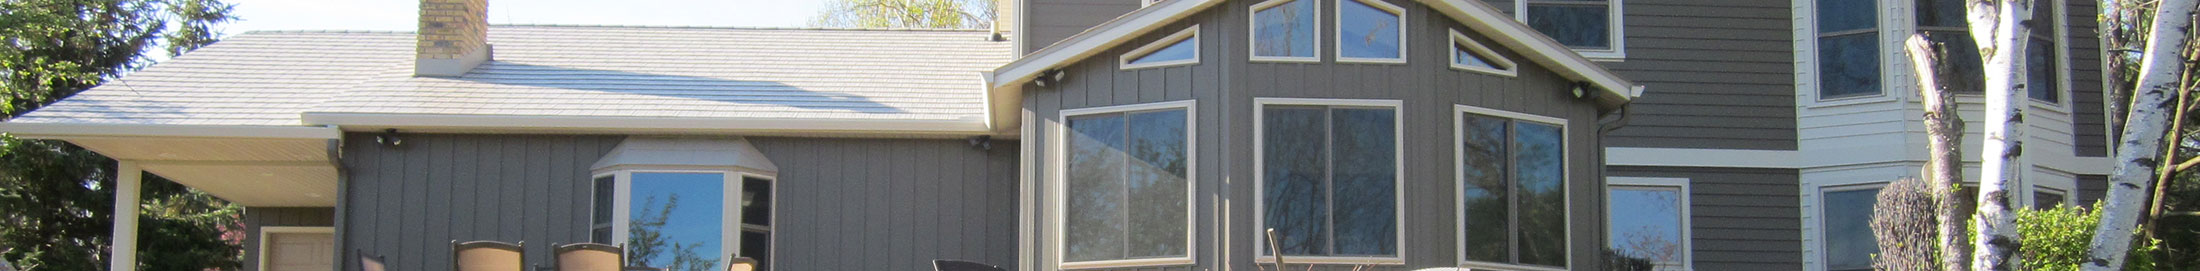 Sunrooms Abc Home Specialists Madison Wi Wisconsin